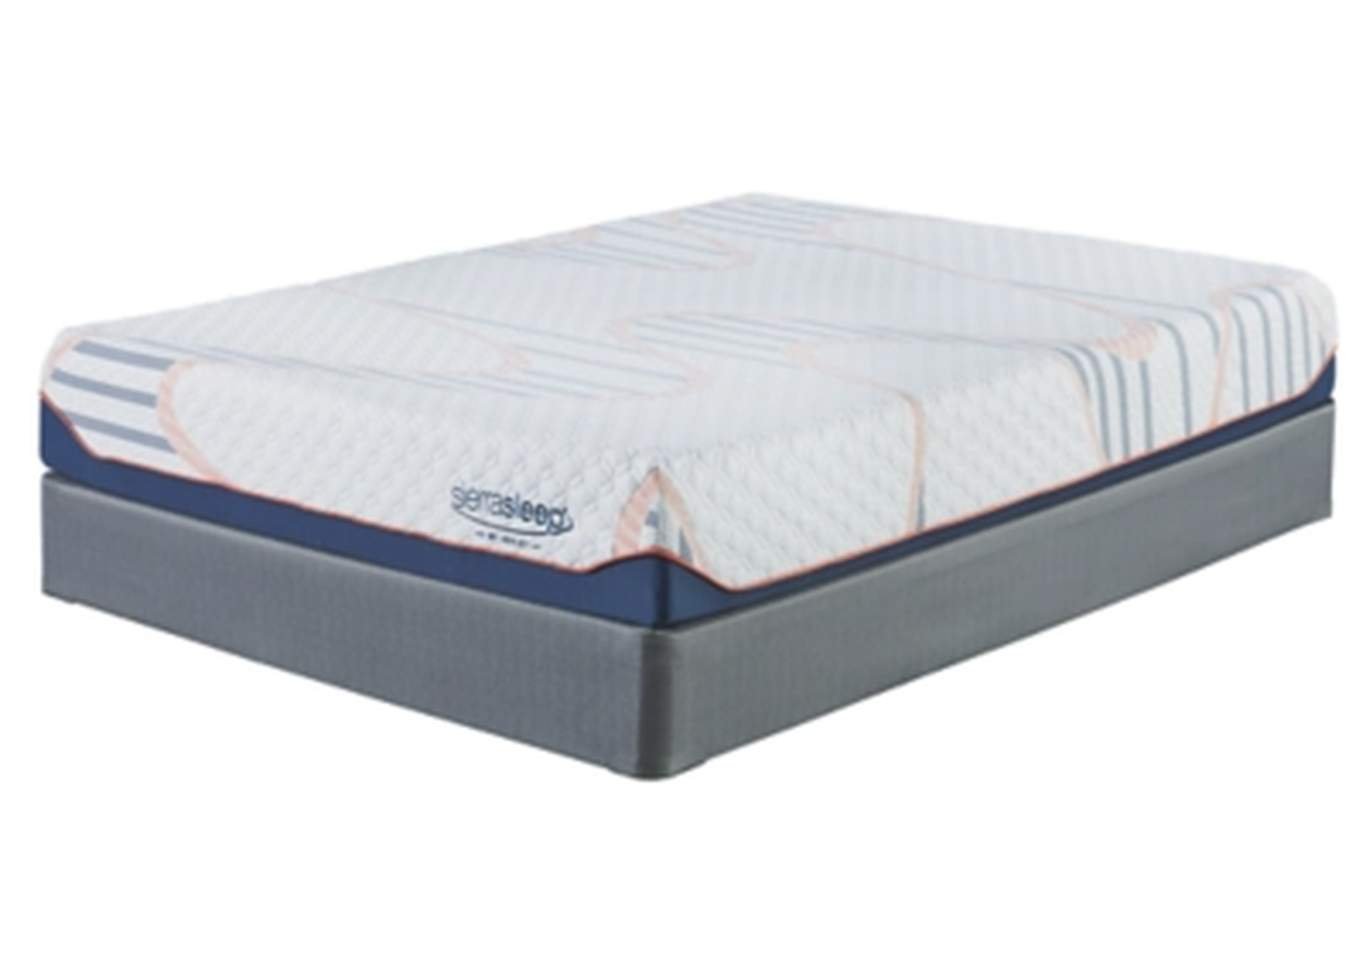 10 Inch MyGel White Twin Mattress w/Foundation,Sierra Sleep by Ashley